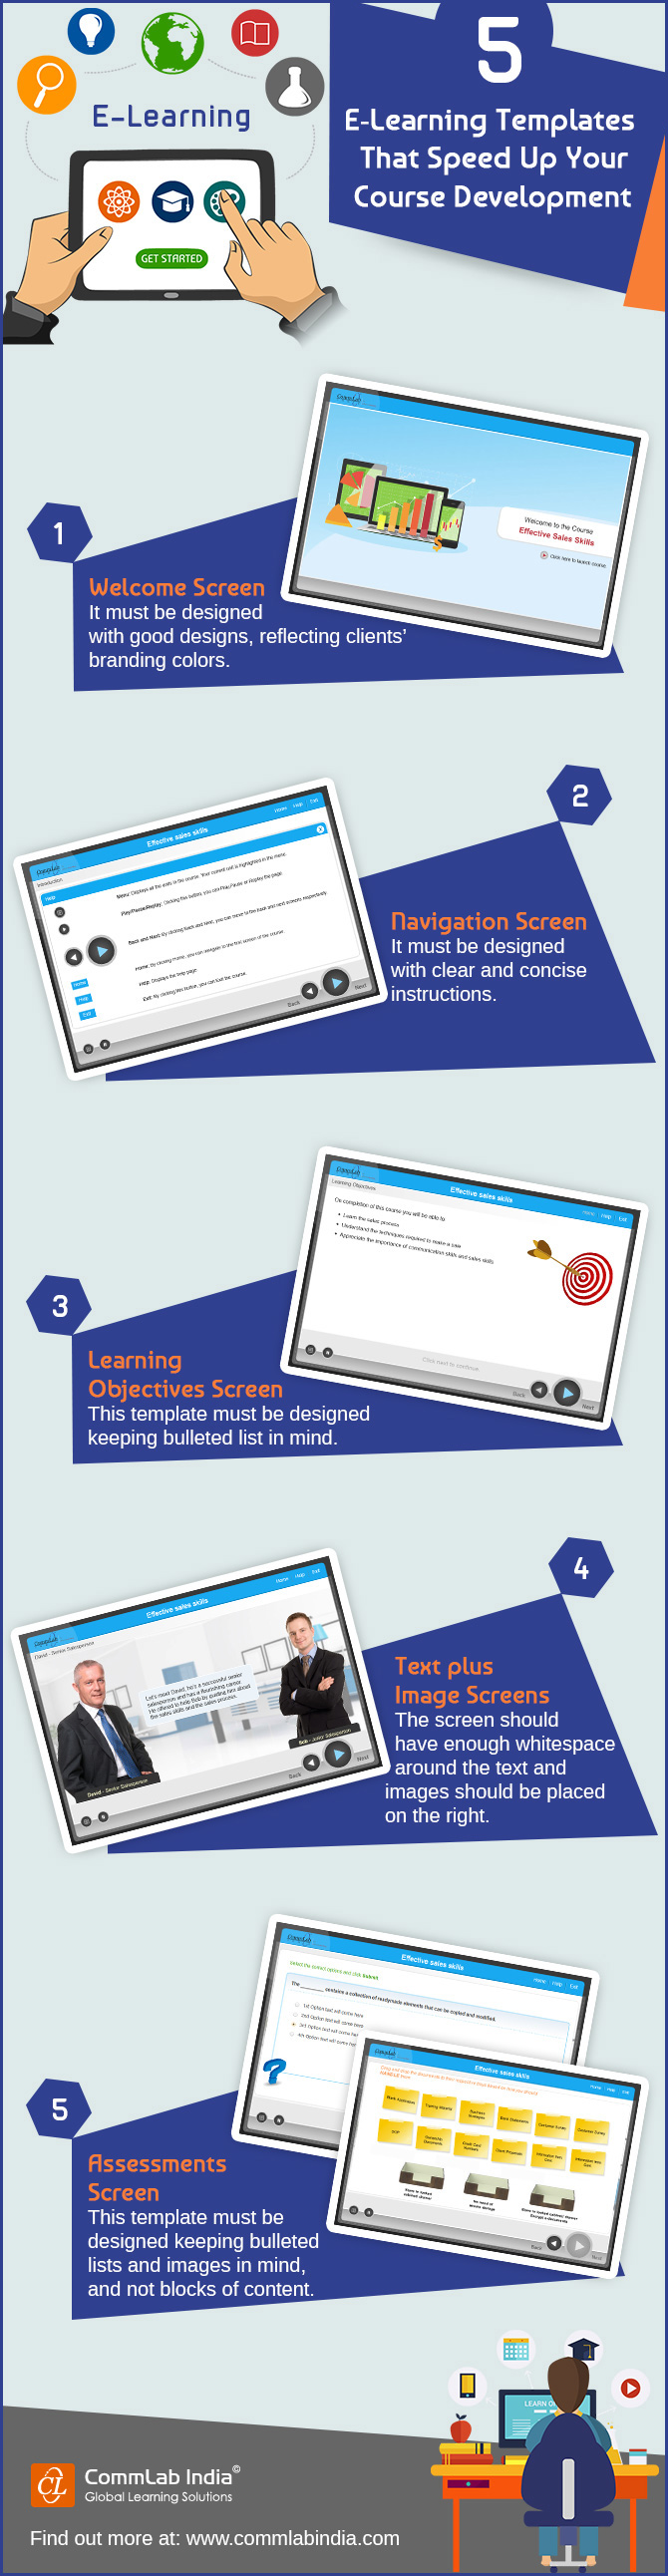 6 E-learning Templates that Speed Up Your Online Training Course Development [Infographic]